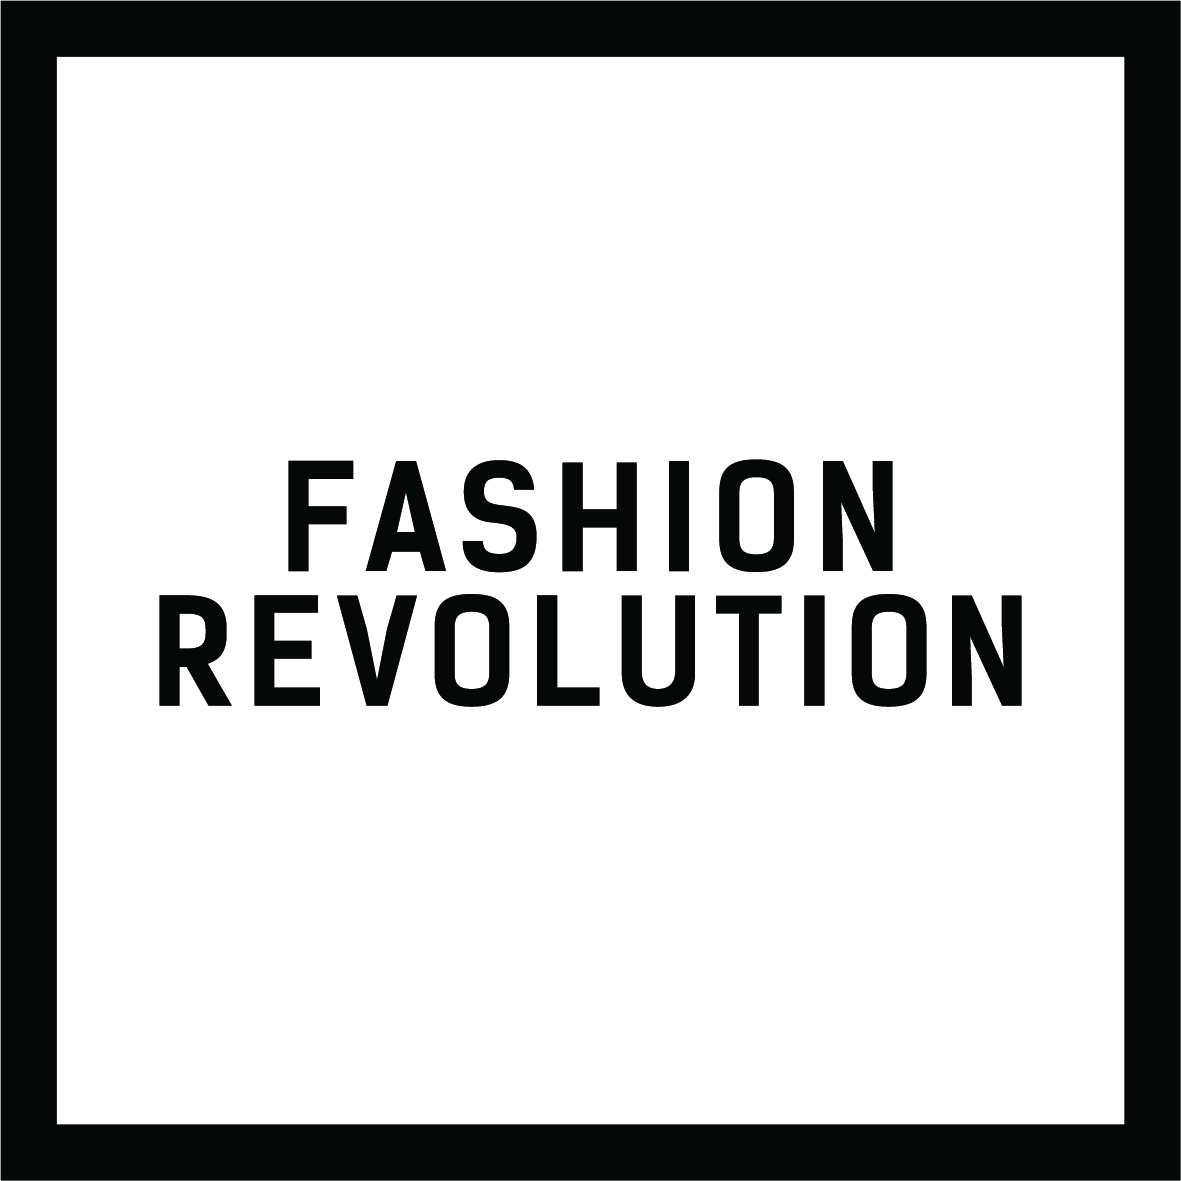 For more information about how you can join the movement and do your bit, take a look at the Fashion Revolution site  here